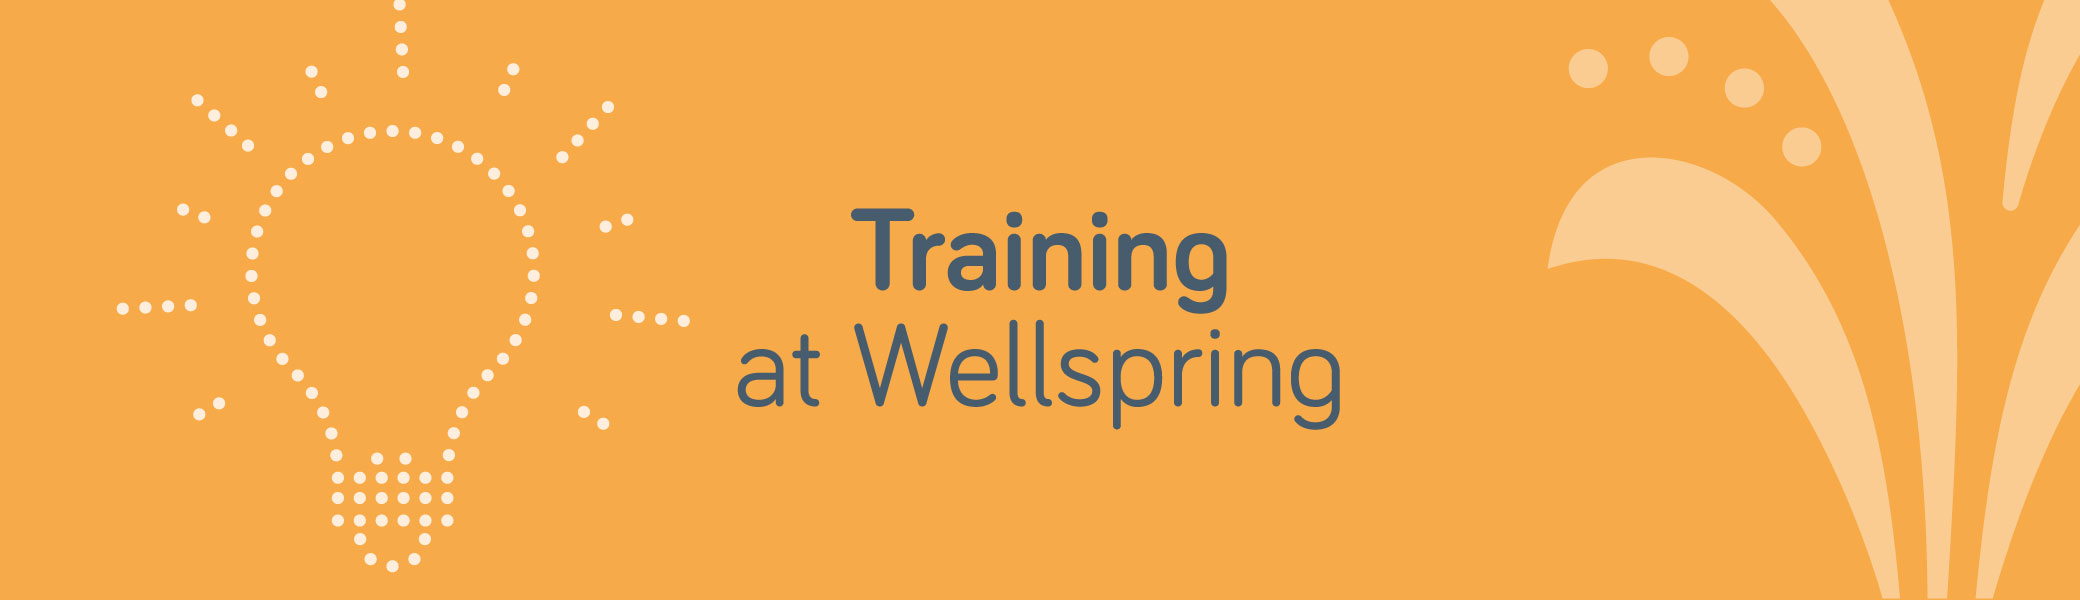 Wellspring-Training-Web_004